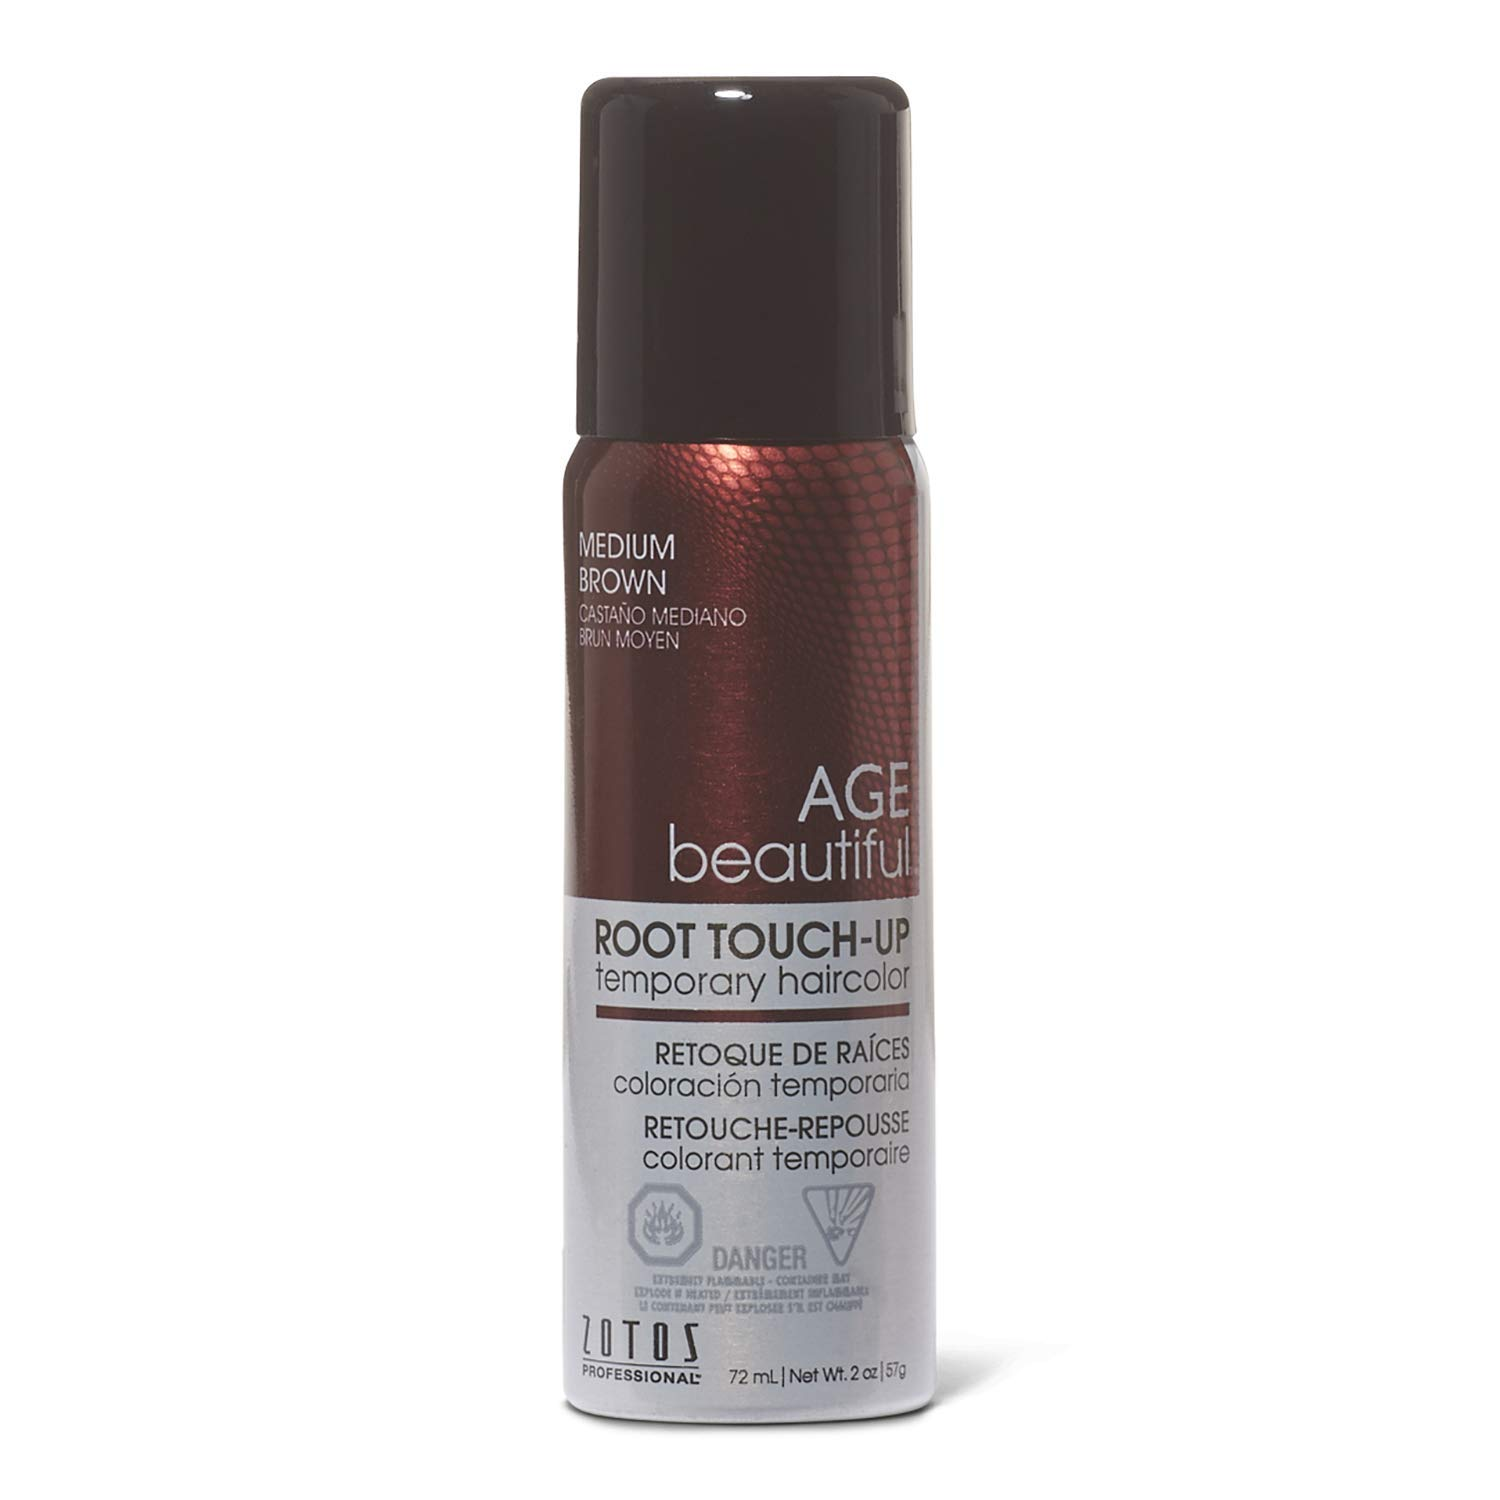 AGEbeautiful Root touch-up, medium brown, Medium Brown, 2 Ounce by AGEbeautiful